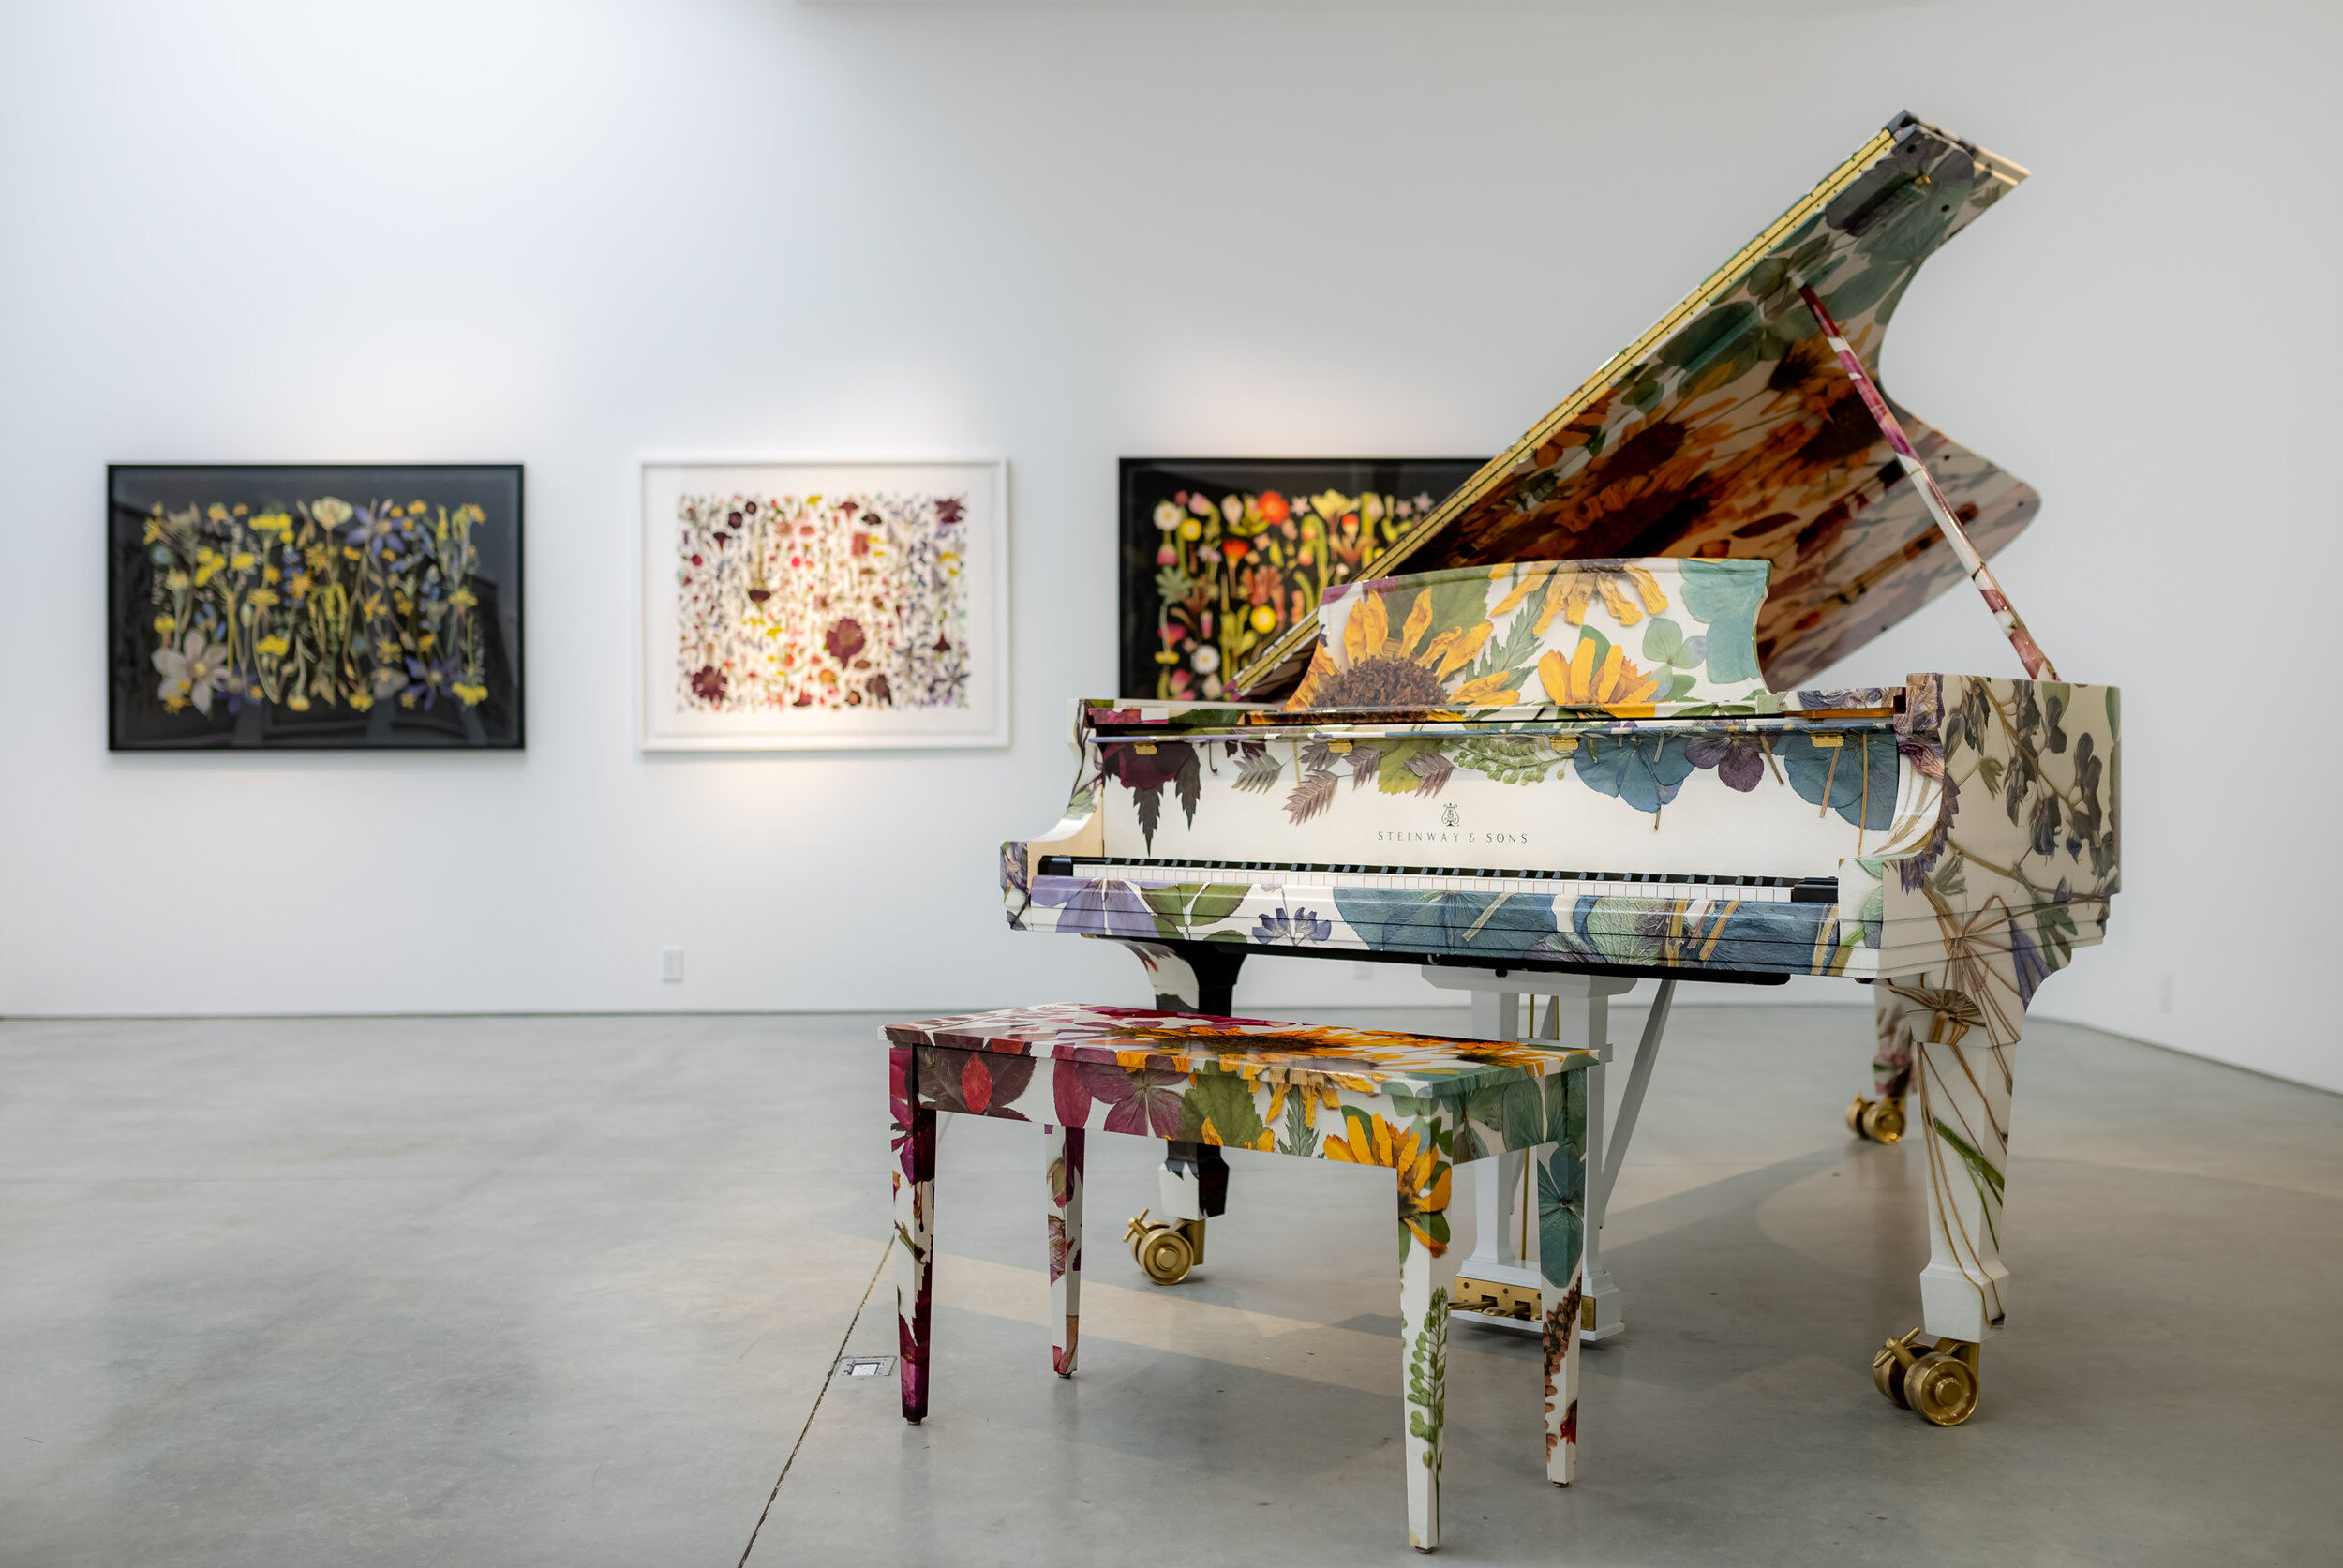 A botanically wrapped Steinway piano in a white gallery with botanical flower prints on the walls